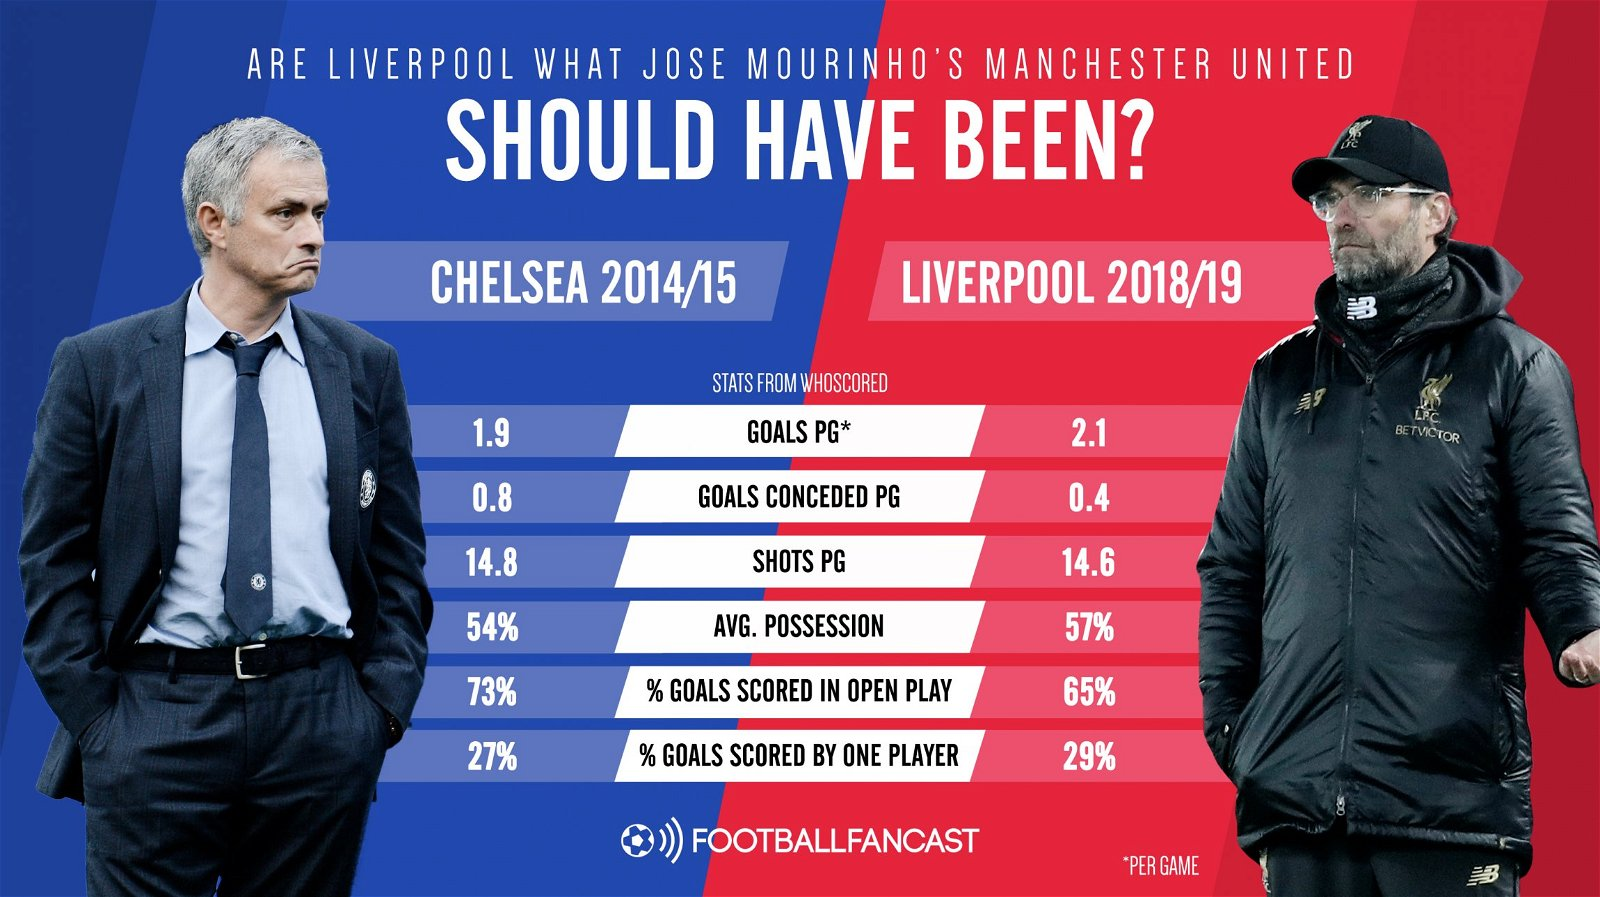 Are Liverpool what Man Utd should have been